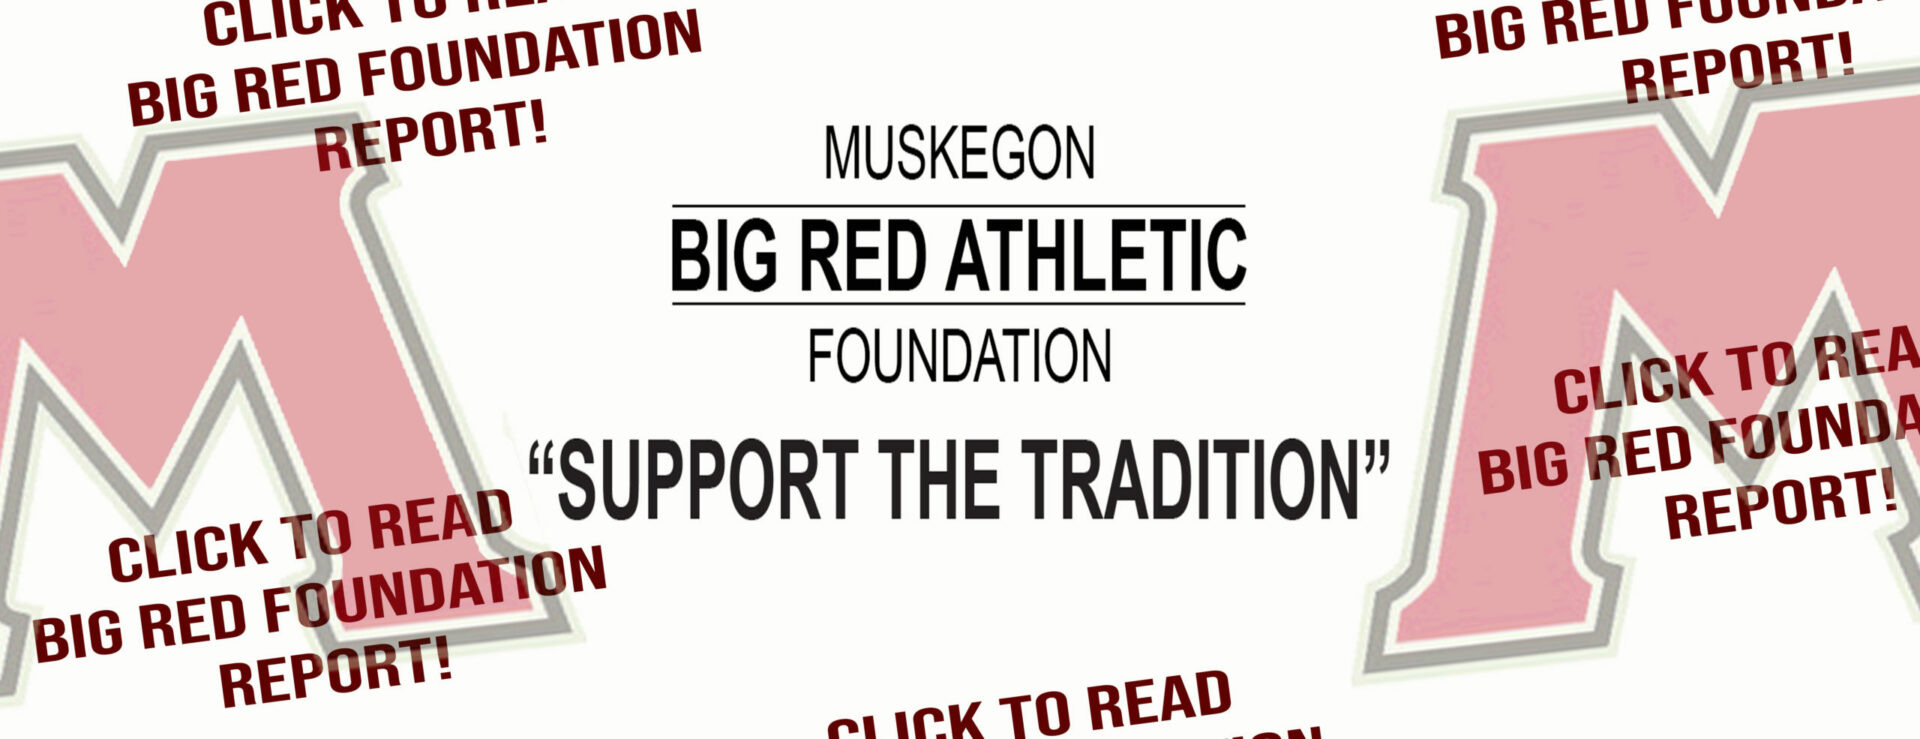 Muskegon Big Red Athletic Foundation supporters continue to drive success in sports class rooms